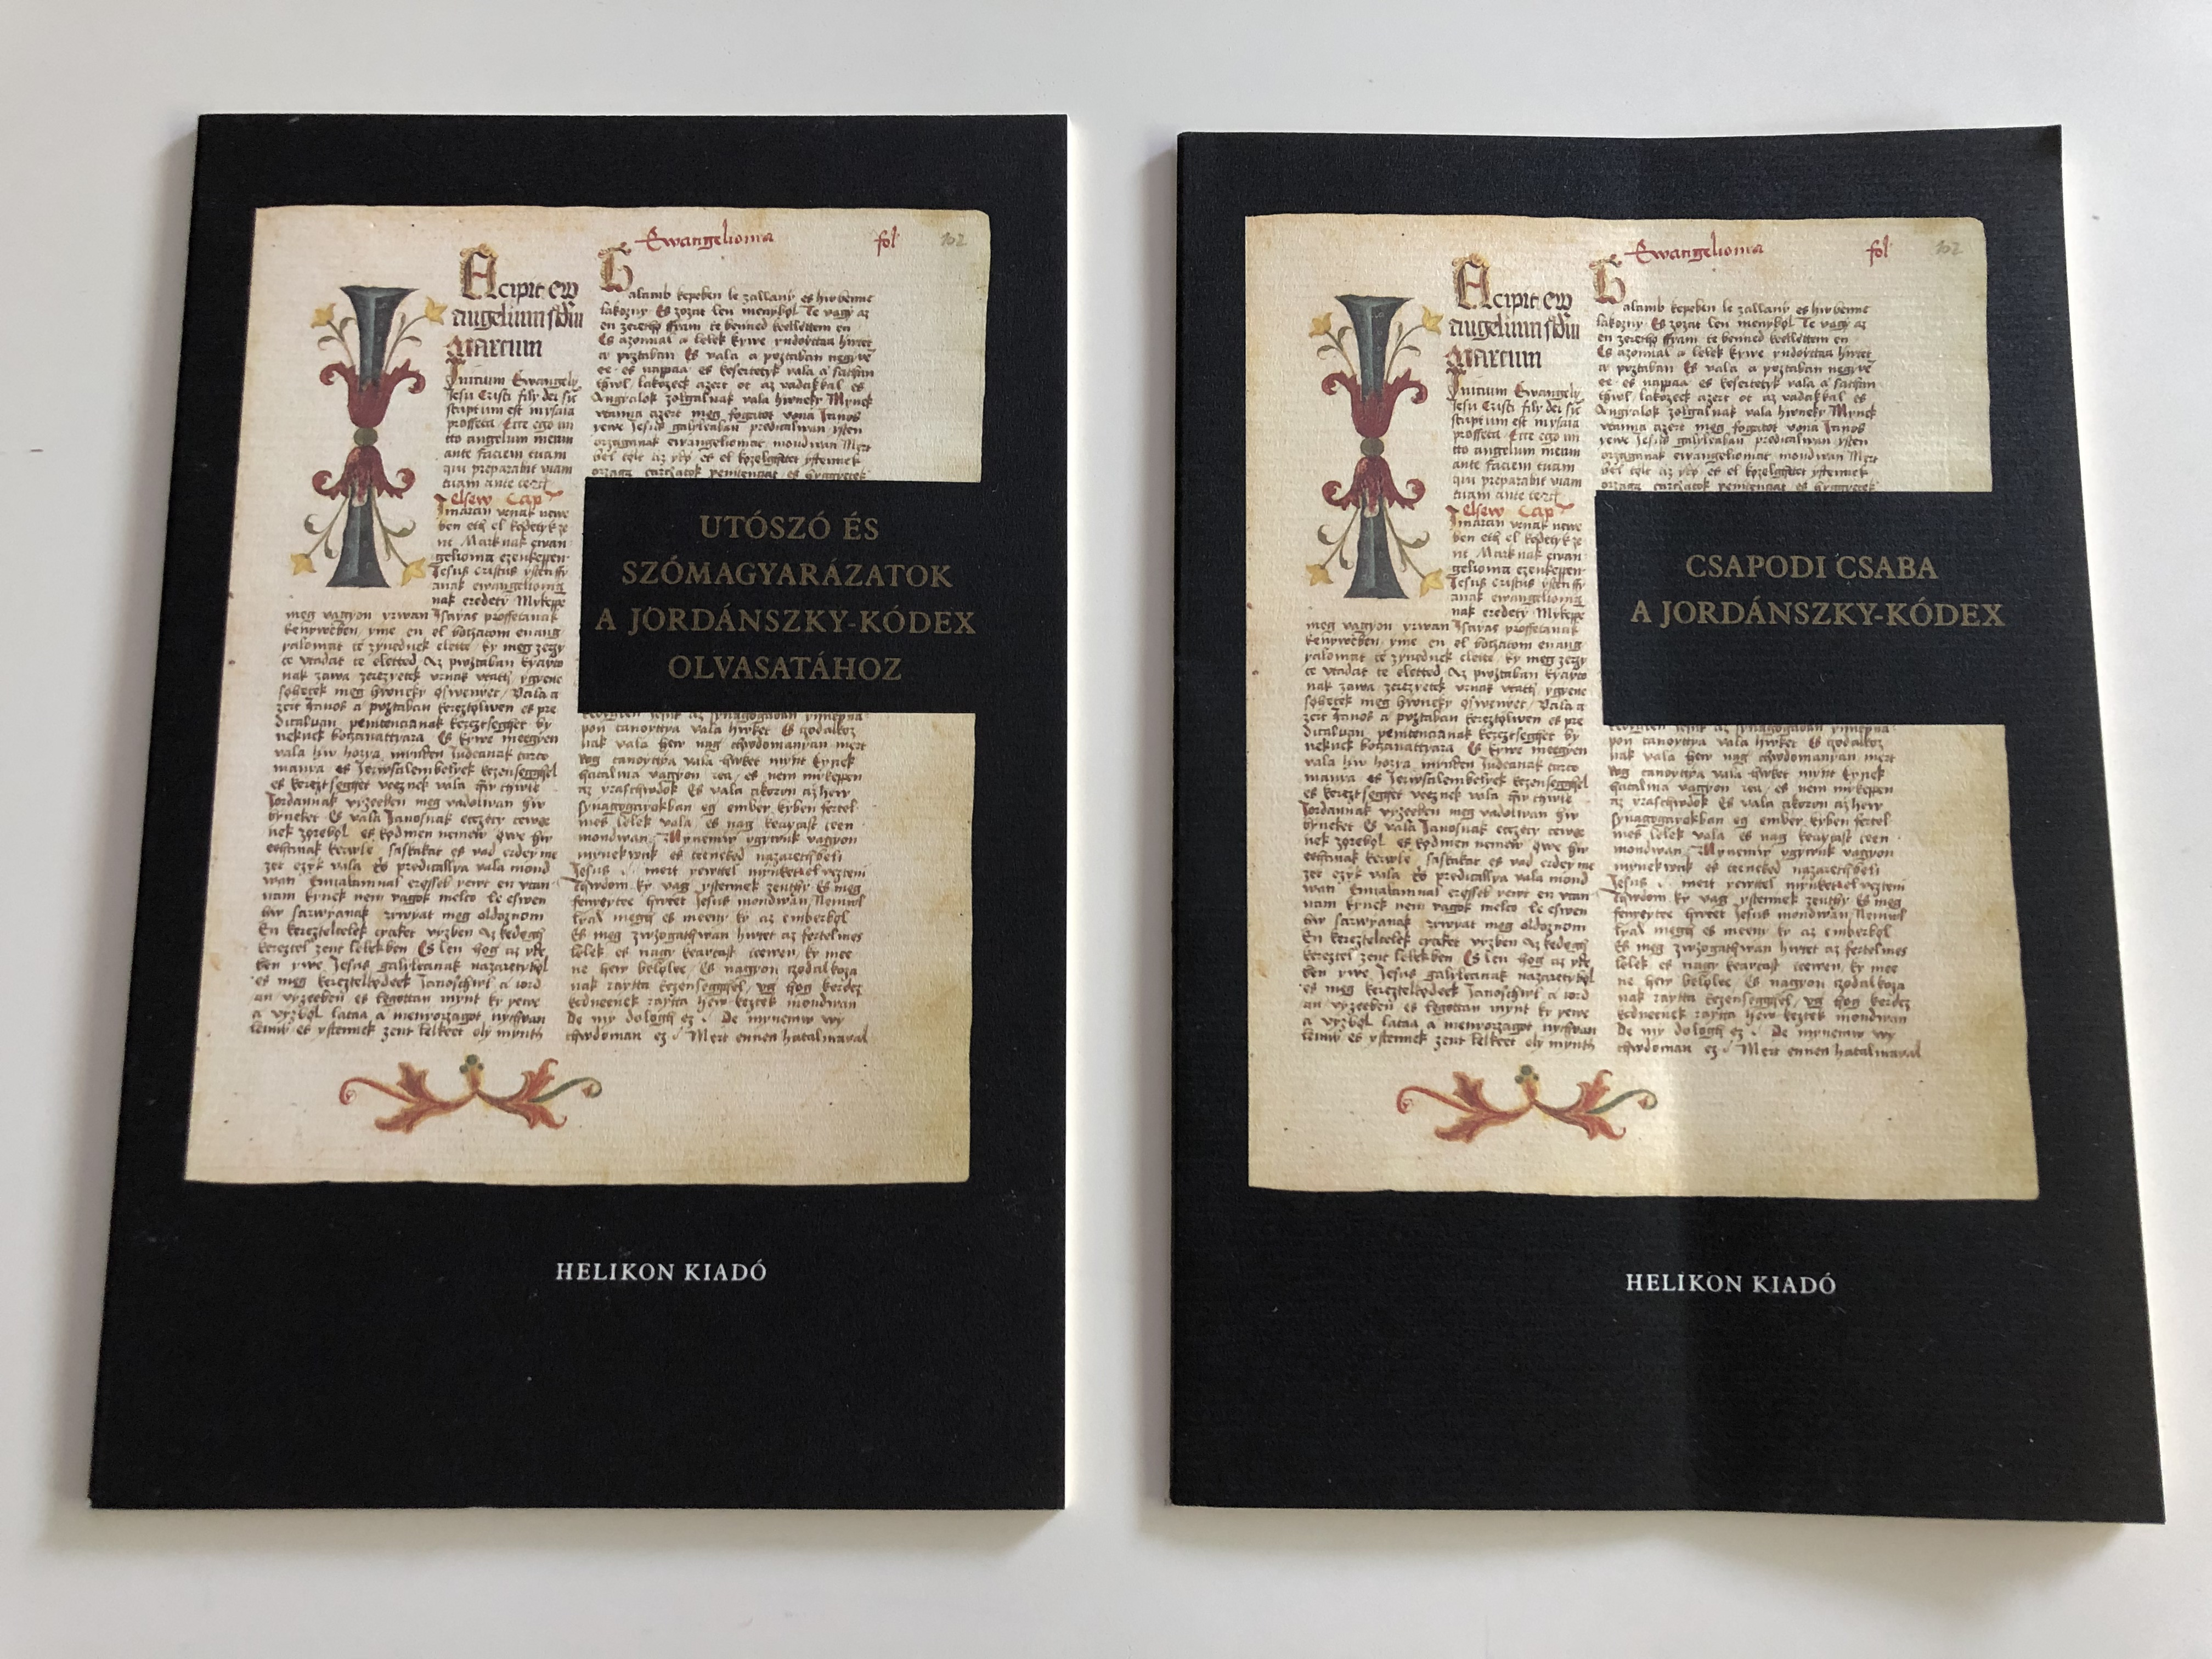 a-jord-nszky-k-dex-1516-1519-3-book-set-hungarian-codex-reprint-containing-bible-translation-from-the-beginning-of-the-16th-century-transcription-of-the-codex-reading-help-and-essay-by-csaba-csapodi-helikon-kiad-36-.jpg